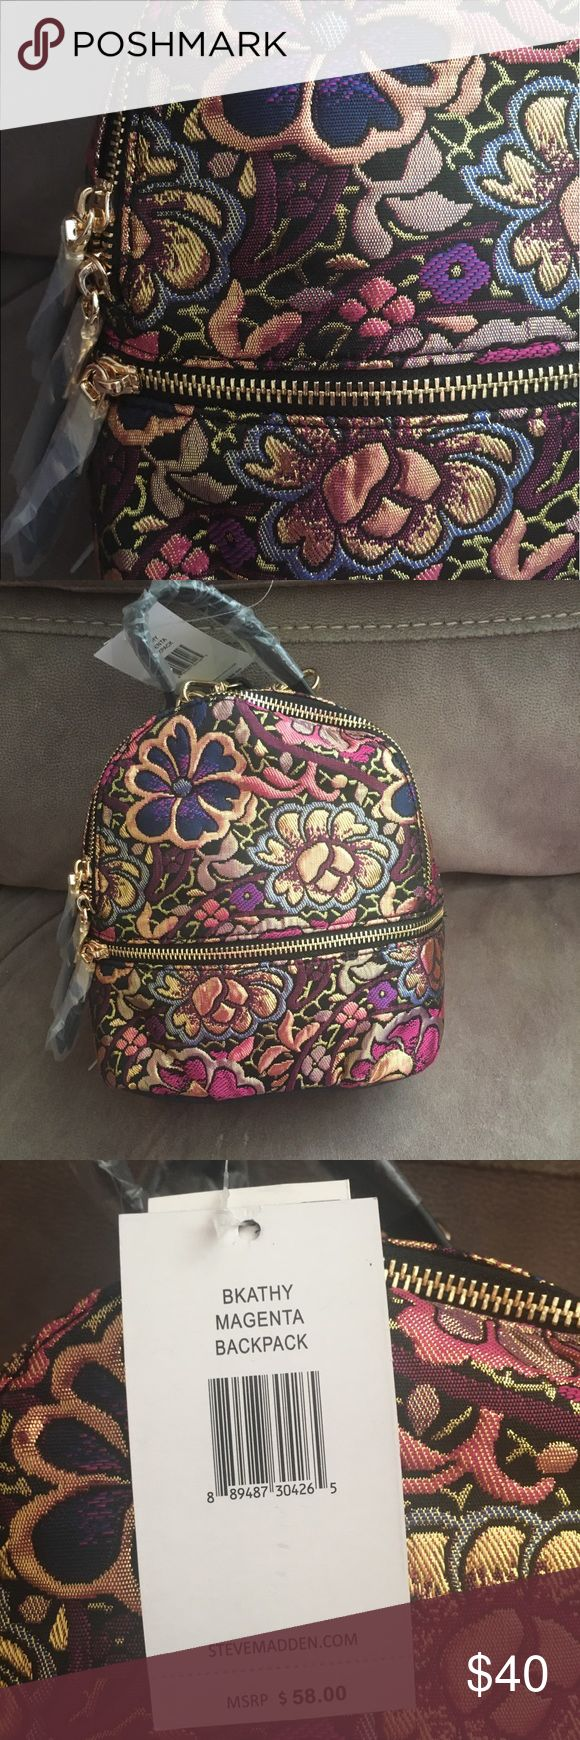 "Steve Madden Small Backpack Small sized backpack 7-1/2""W x 8-1/2""H x 4""D  11-1/2"" Removable straps  Good tone zippers  Brand new with tags and plastic still on Steve Madden Bags Backpacks"